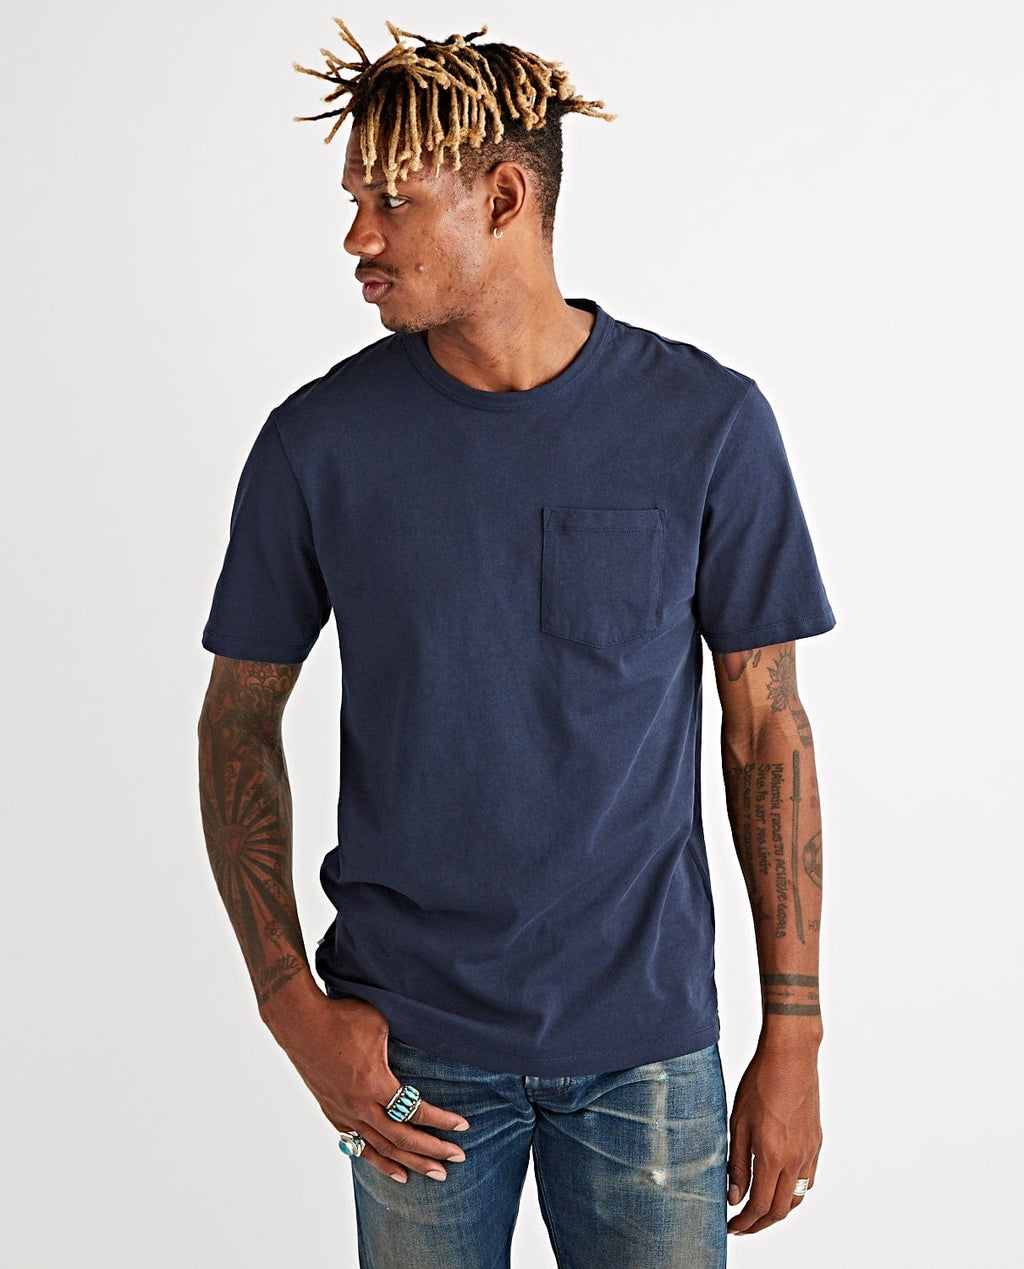 John Pocket Tee Outer Space